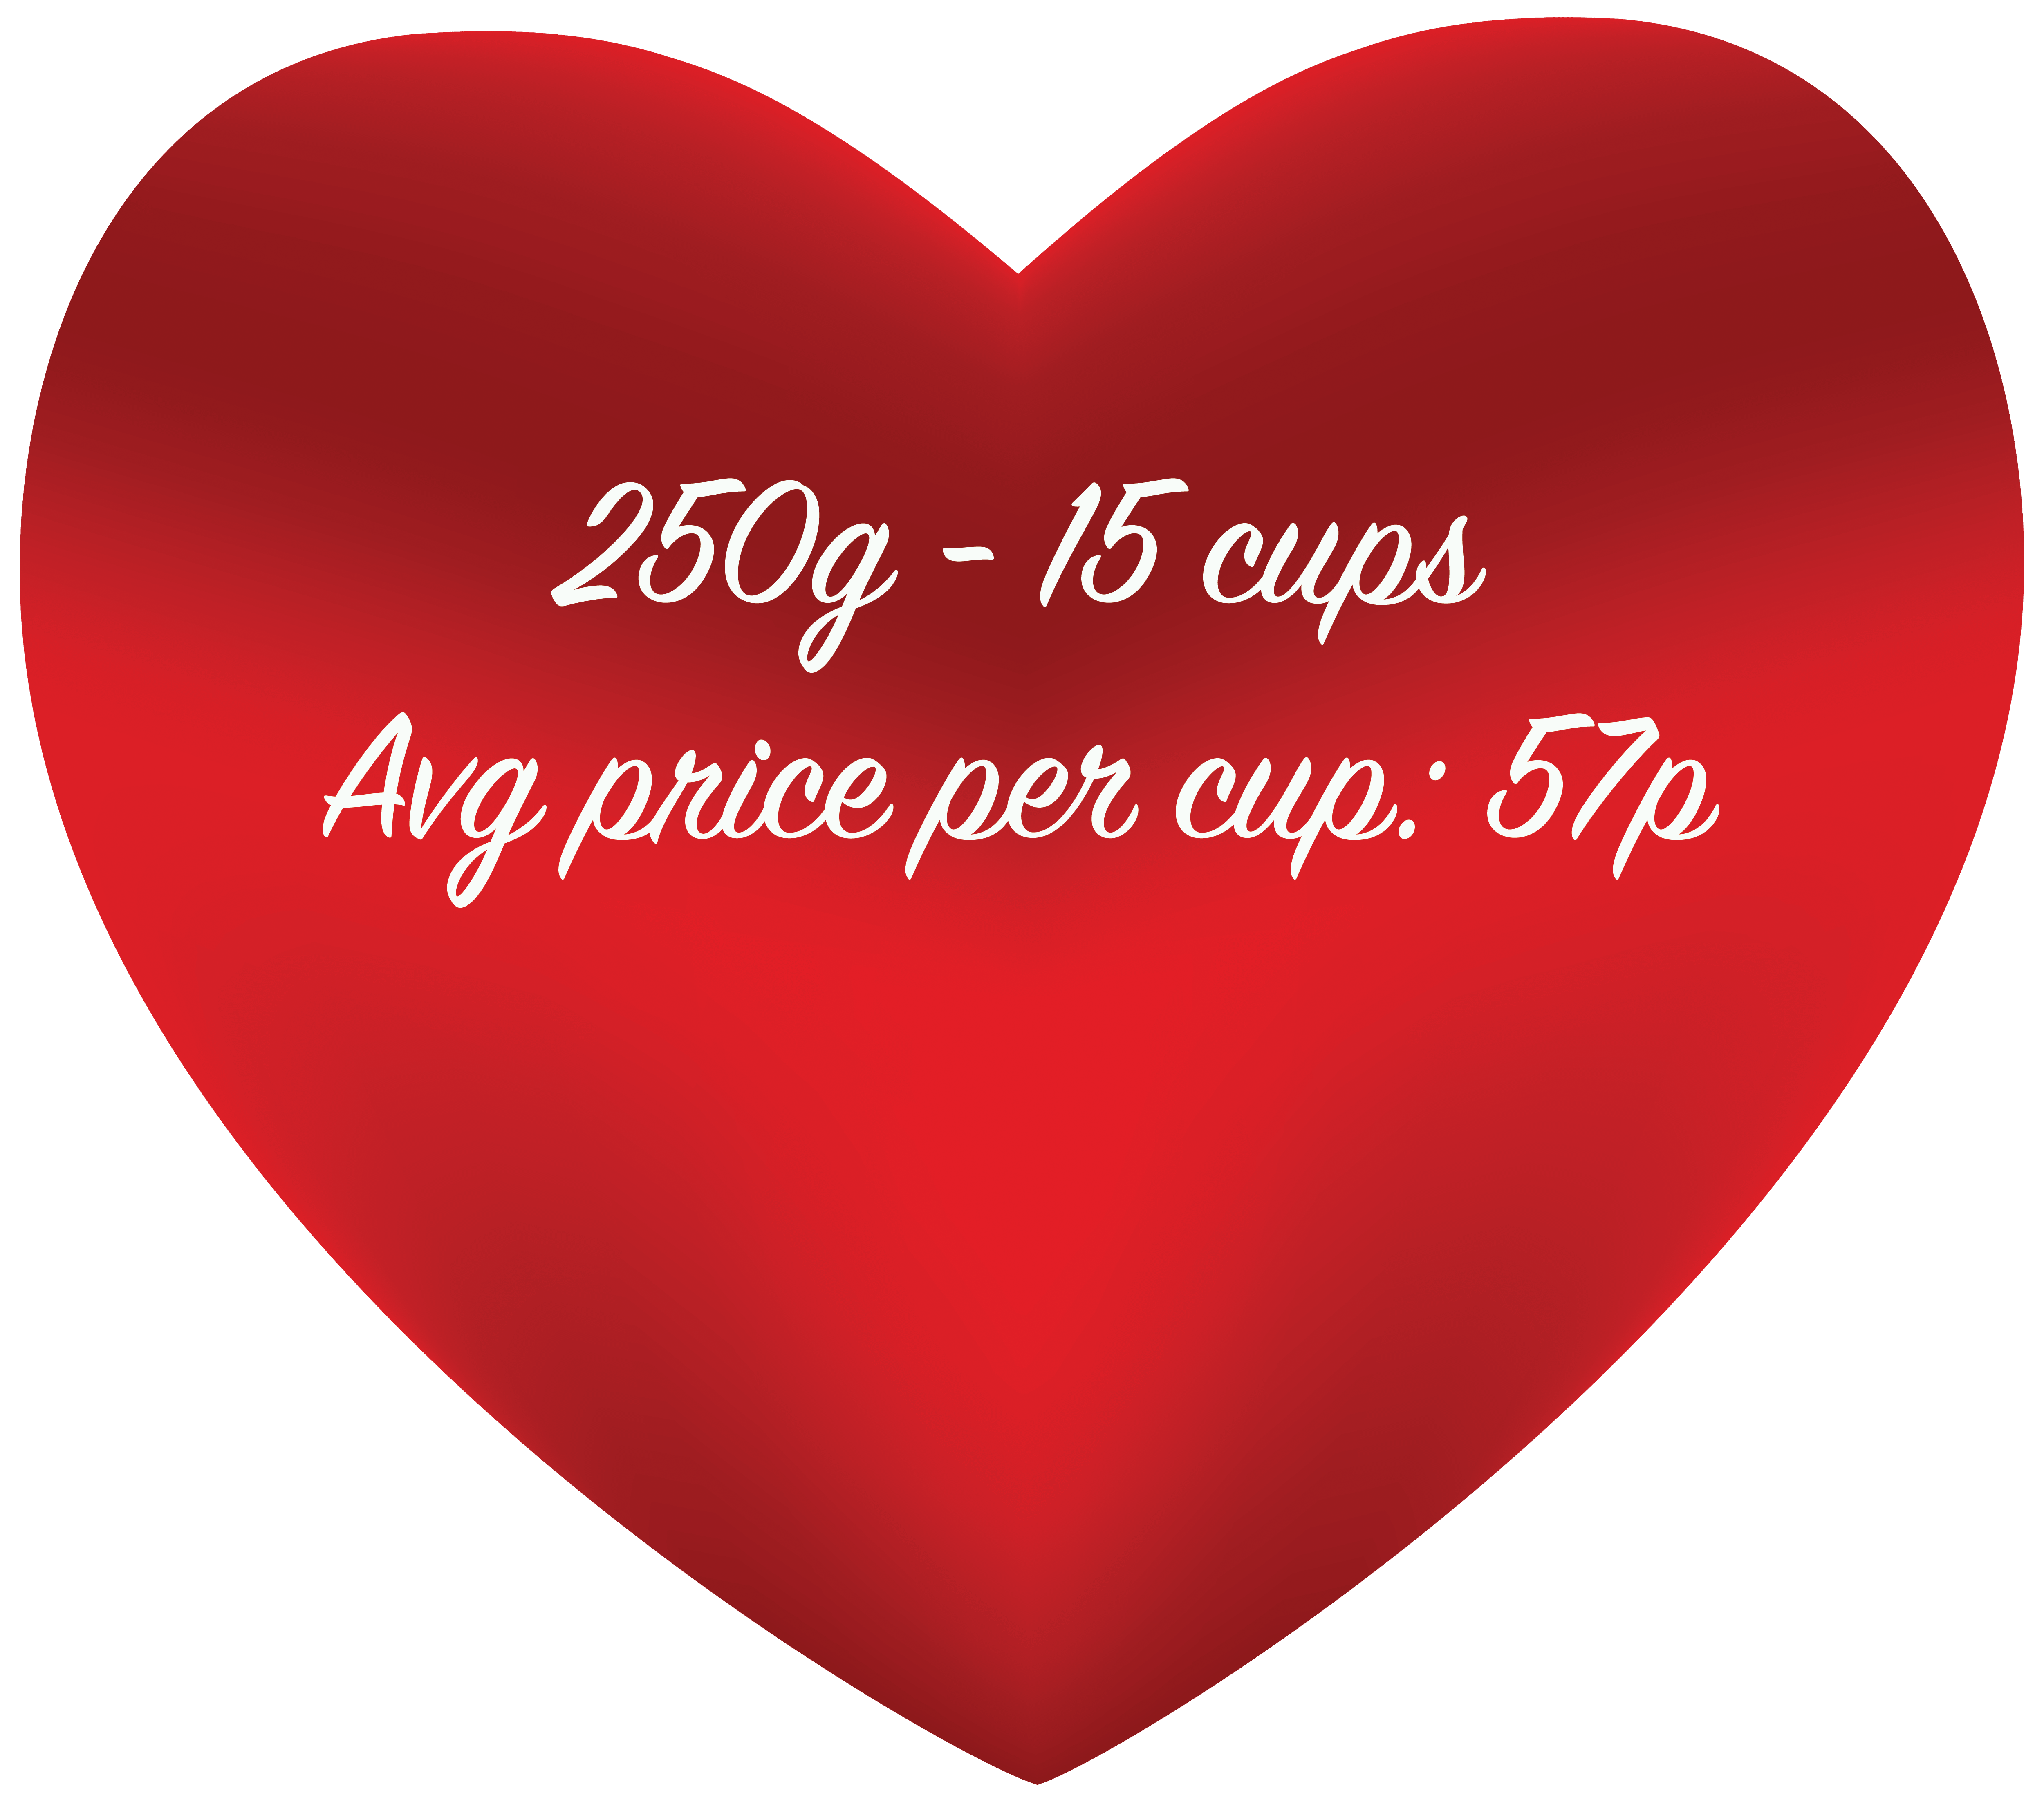 heart-15-cups